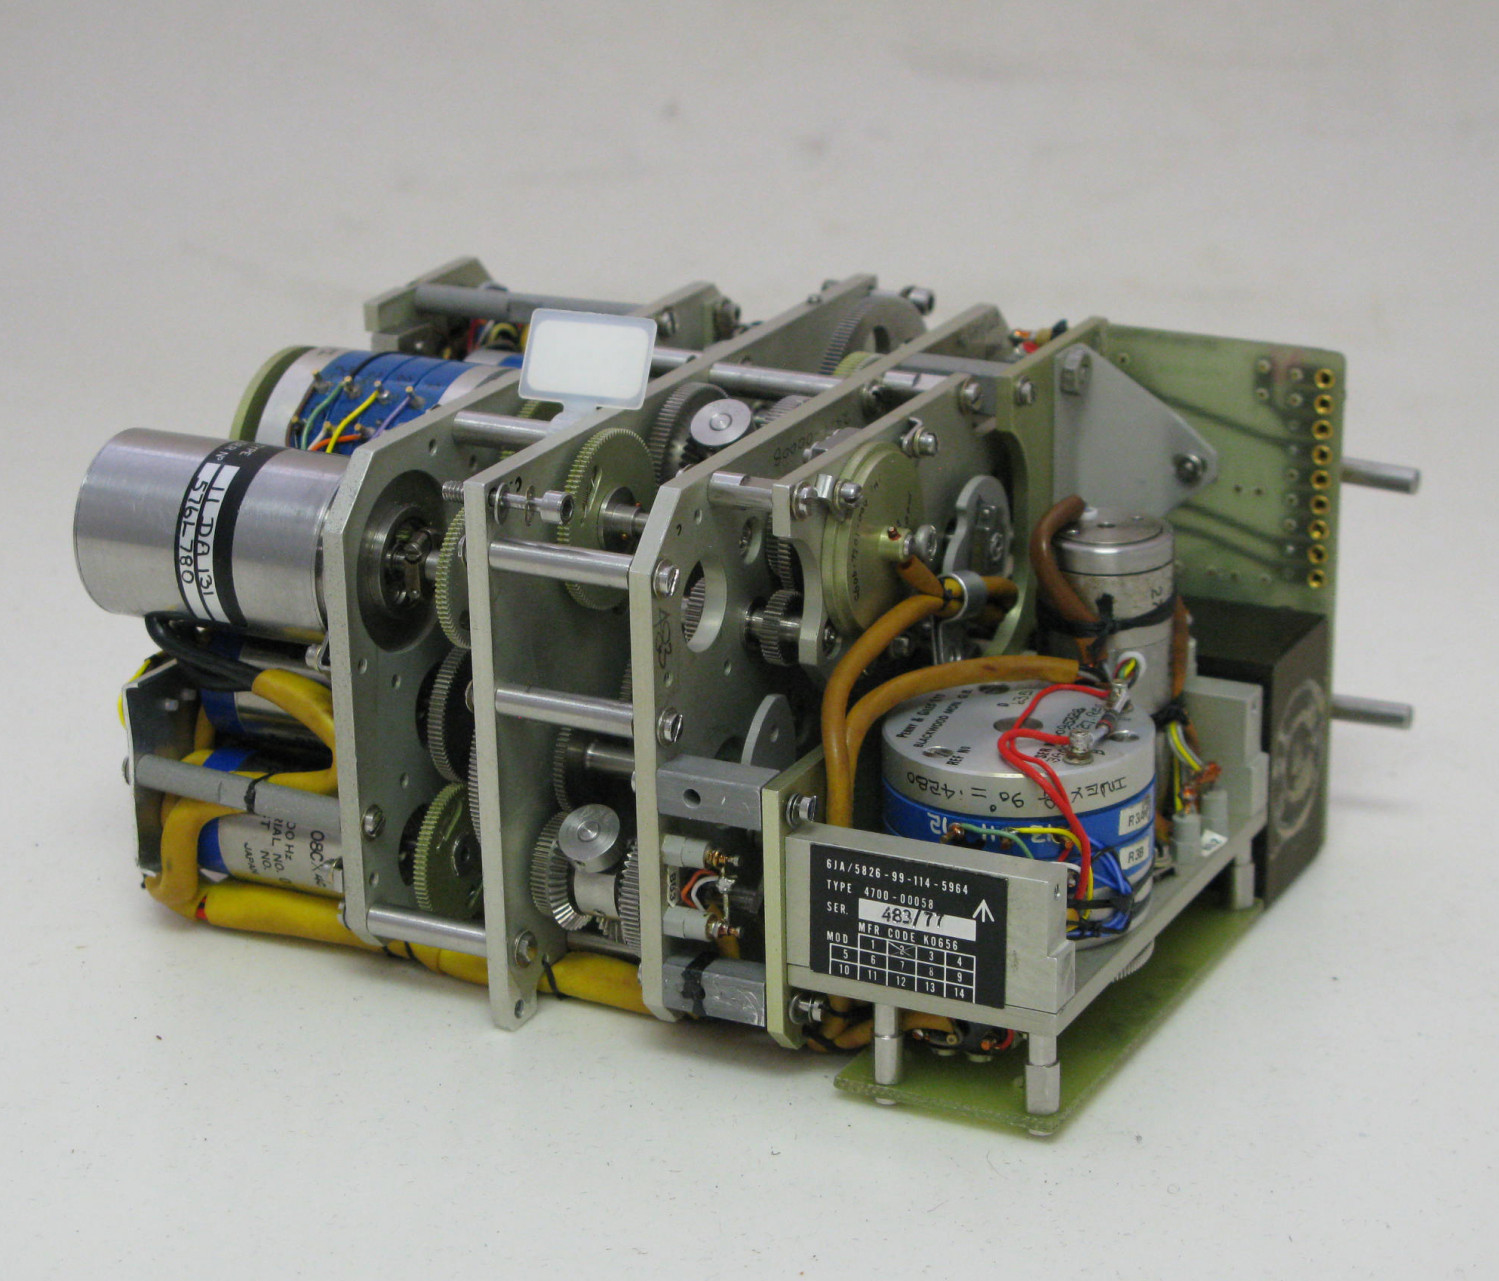 Gearbox Unit, Computing and Output Module